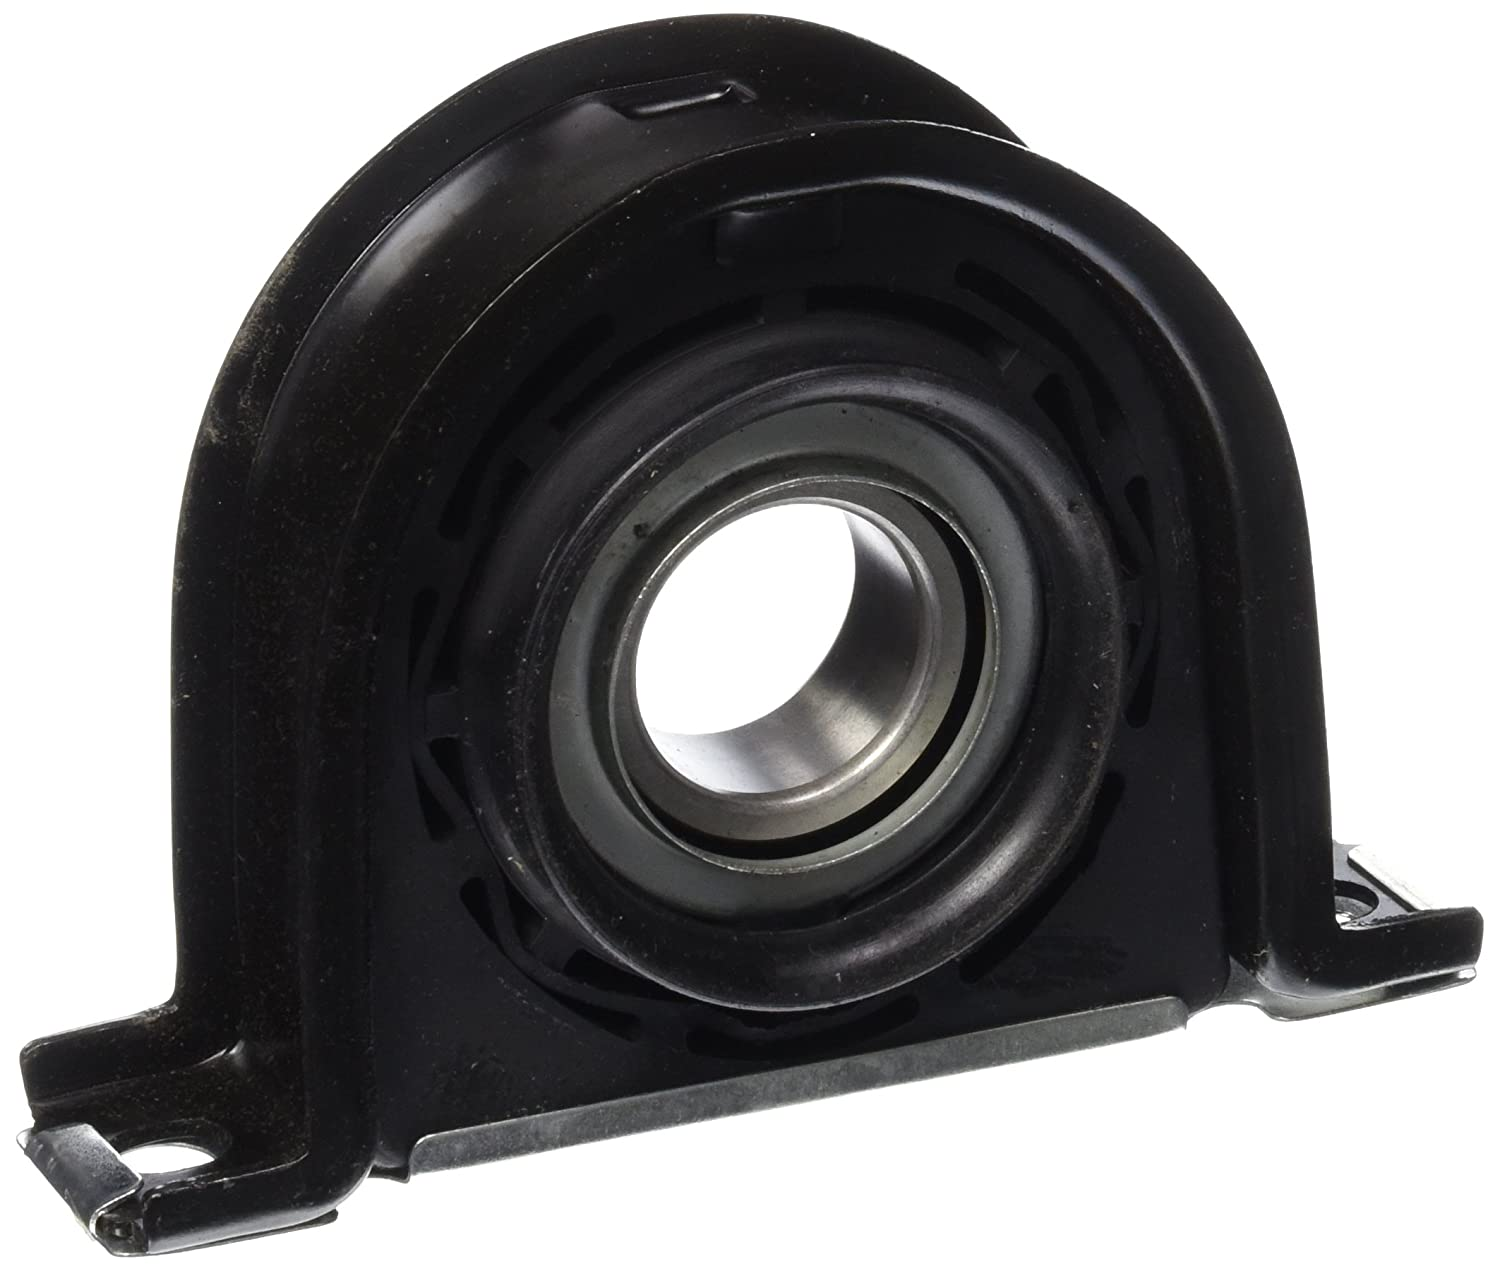 Anchor 6038 Drive Shaft Center Support